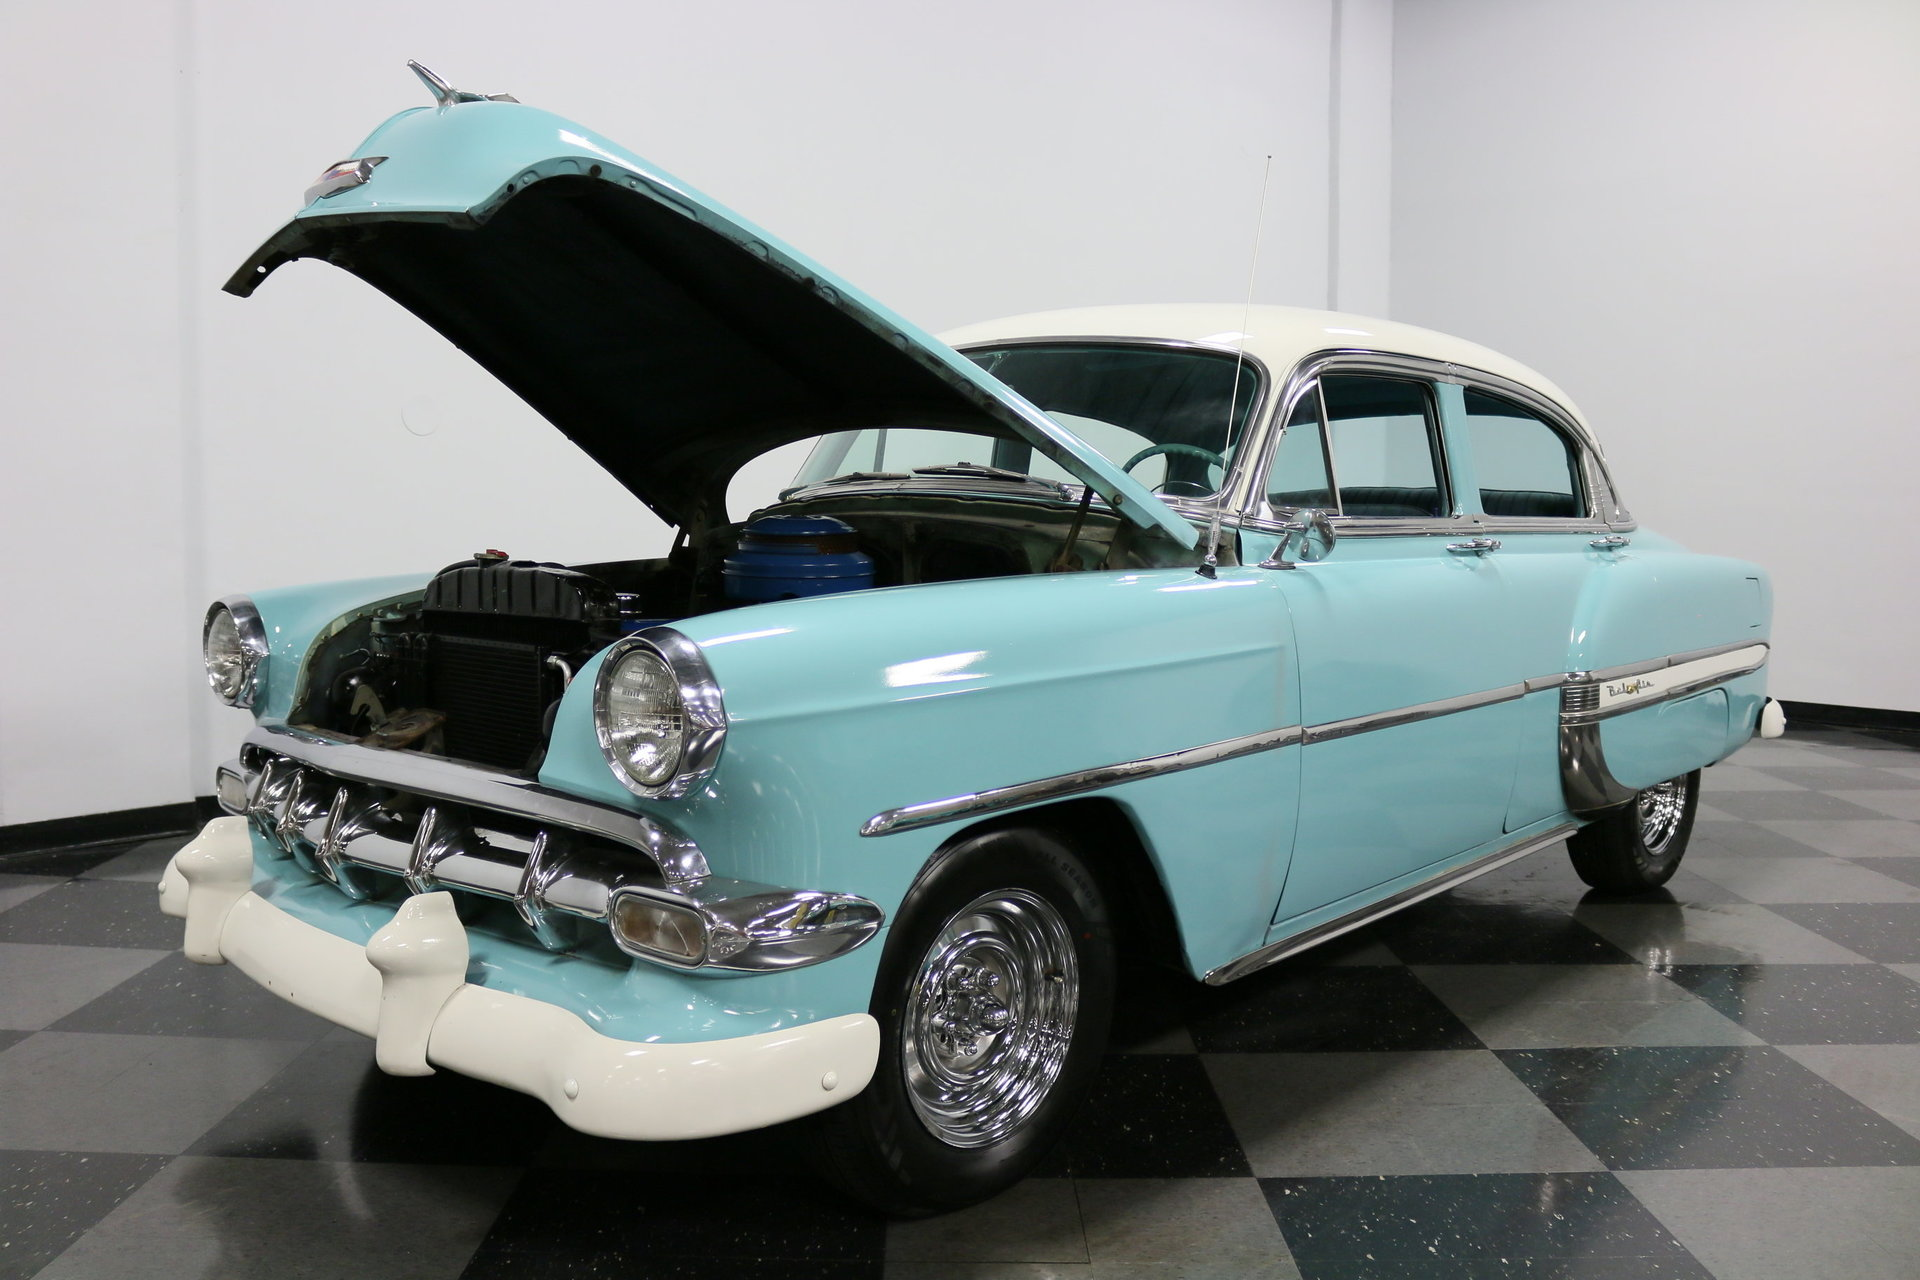 1954 Chevrolet Bel Air Streetside Classics The Nations Trusted Spincar View 360